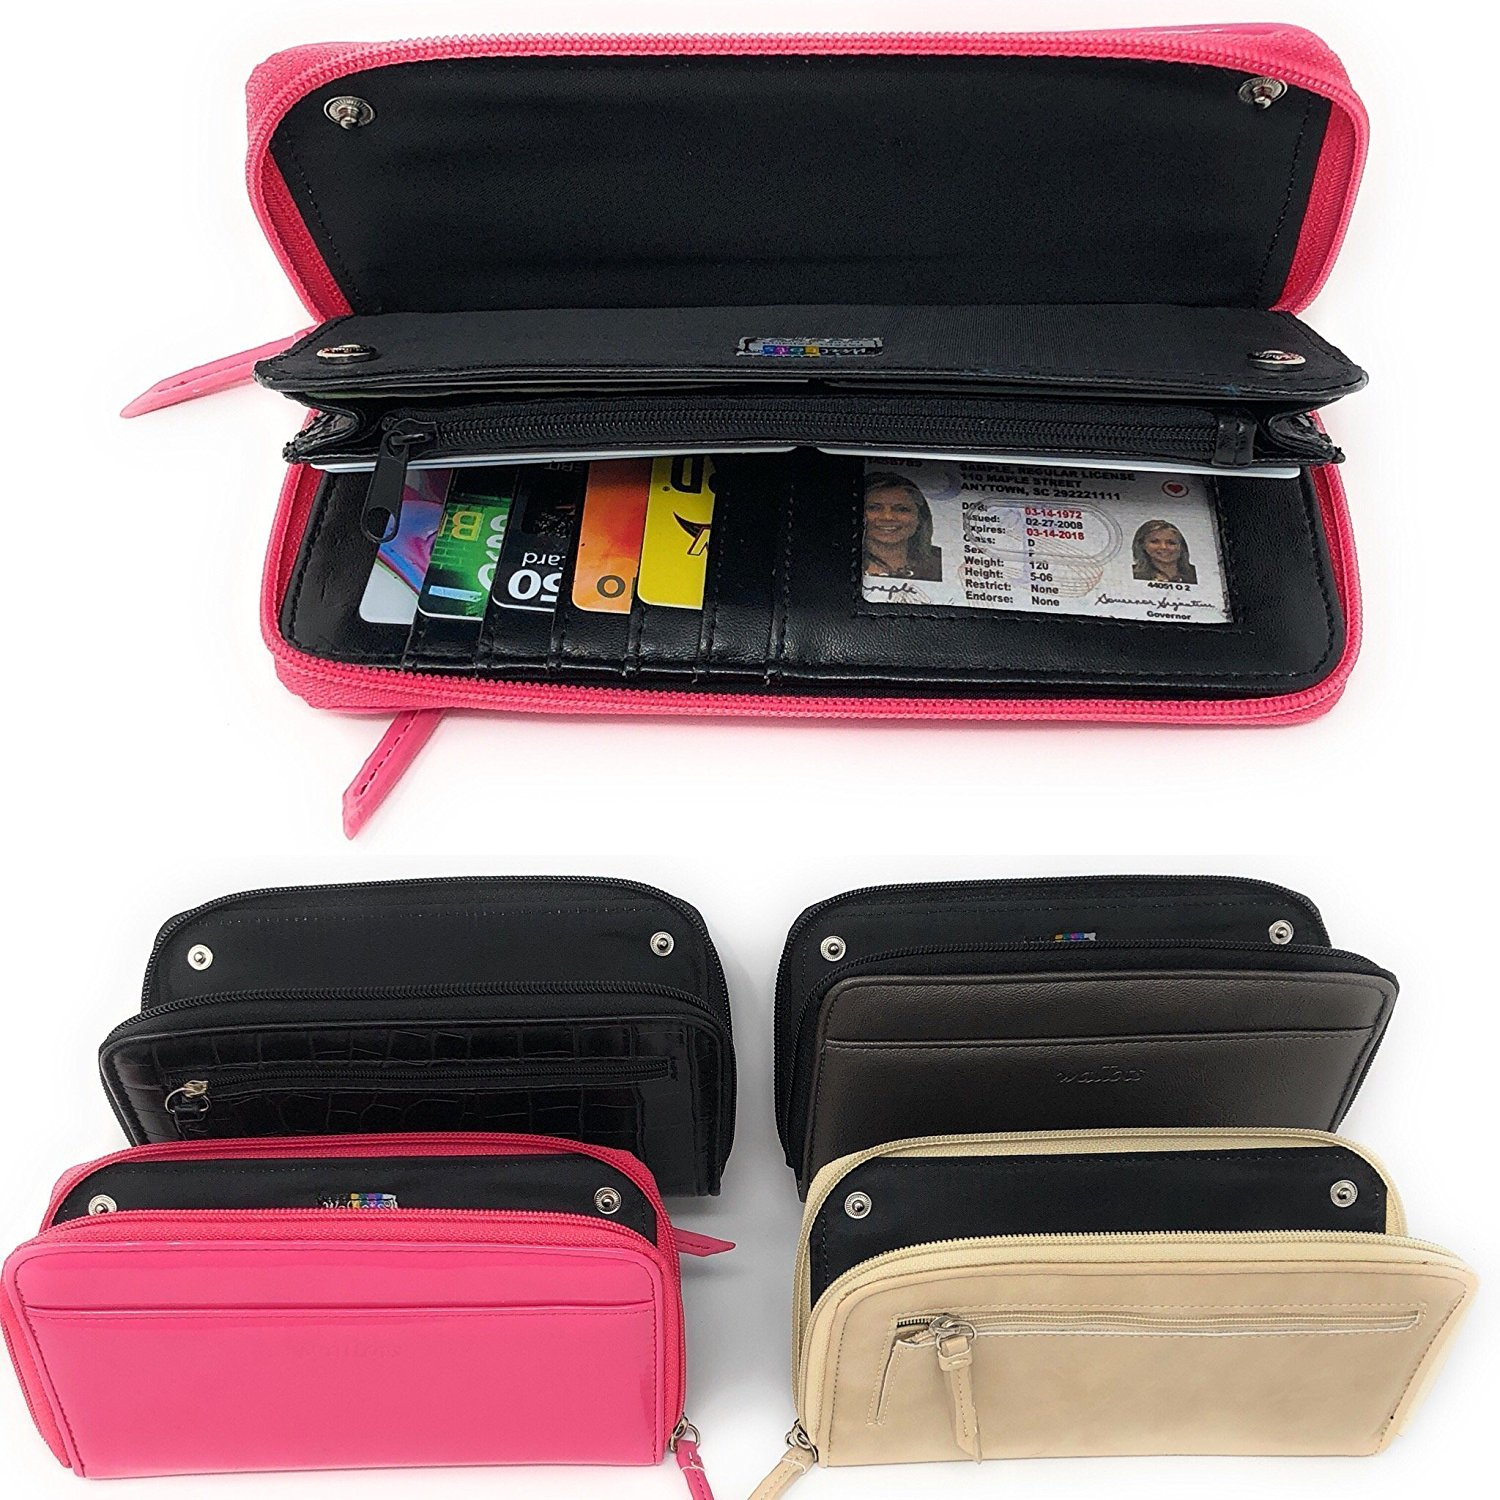 ~NEW~ Interchangeable Wallets for Women ~ 5 PIECE Set ~ With Zipper Pockets Checkbook Card Holder Hot Pink Pewter Tan Black Wallet Clutch PU Leather by ccBYs